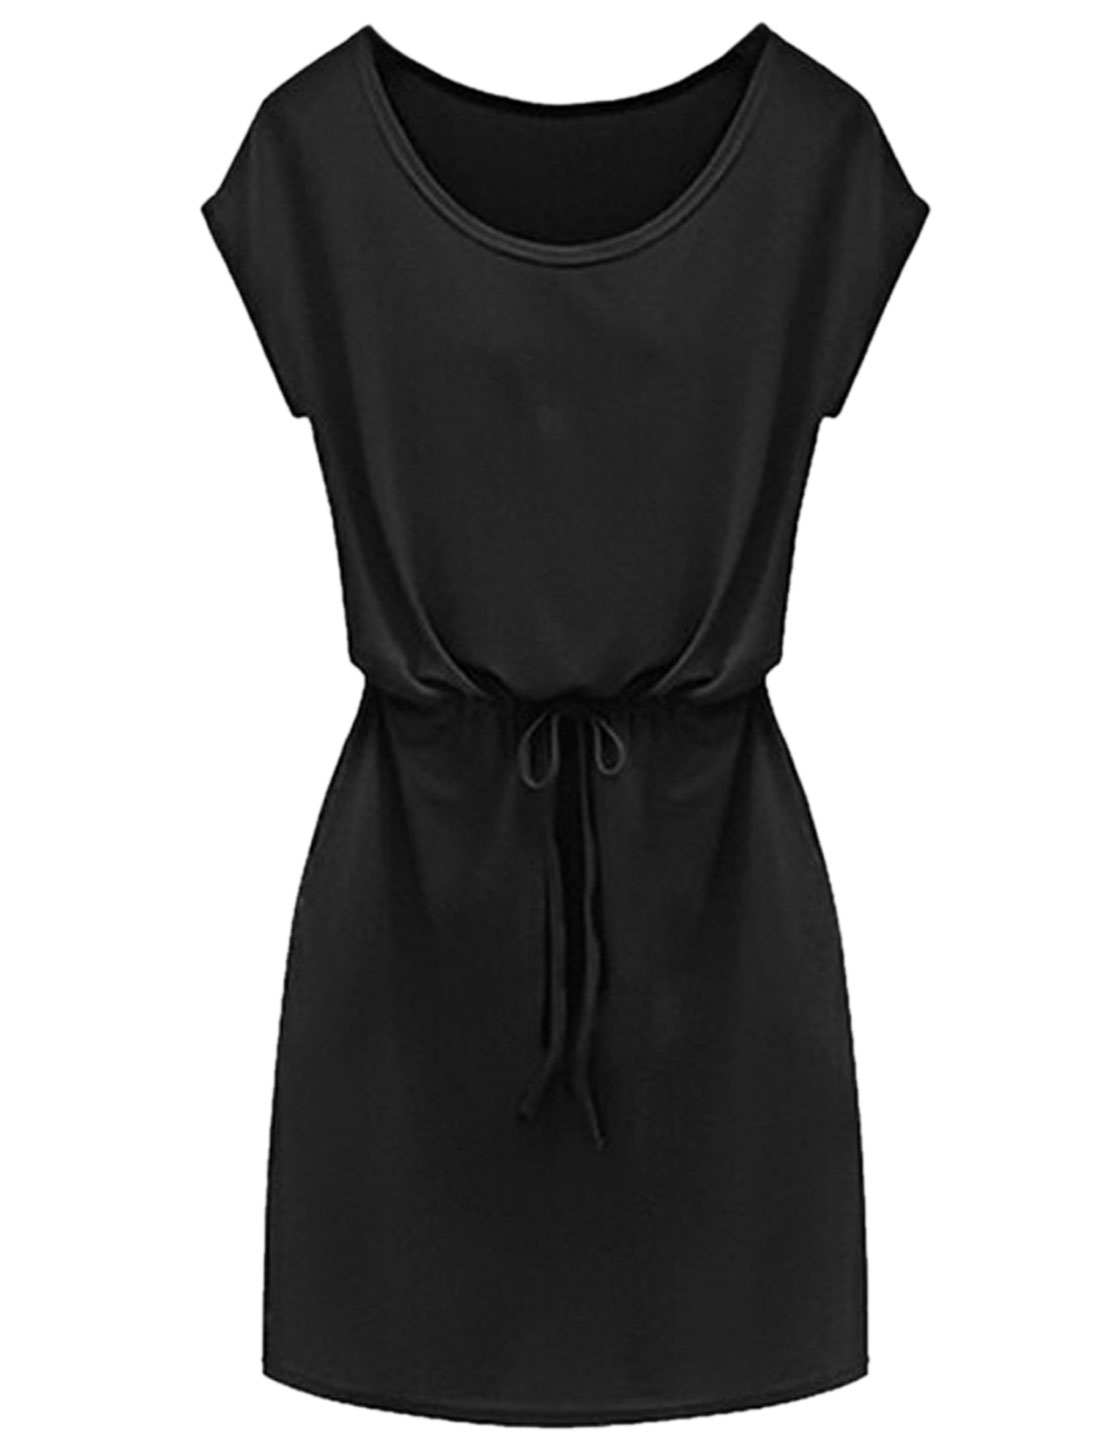 Women Round Neck Short Sleeves Drawstring Waist Casual Dress Black XS